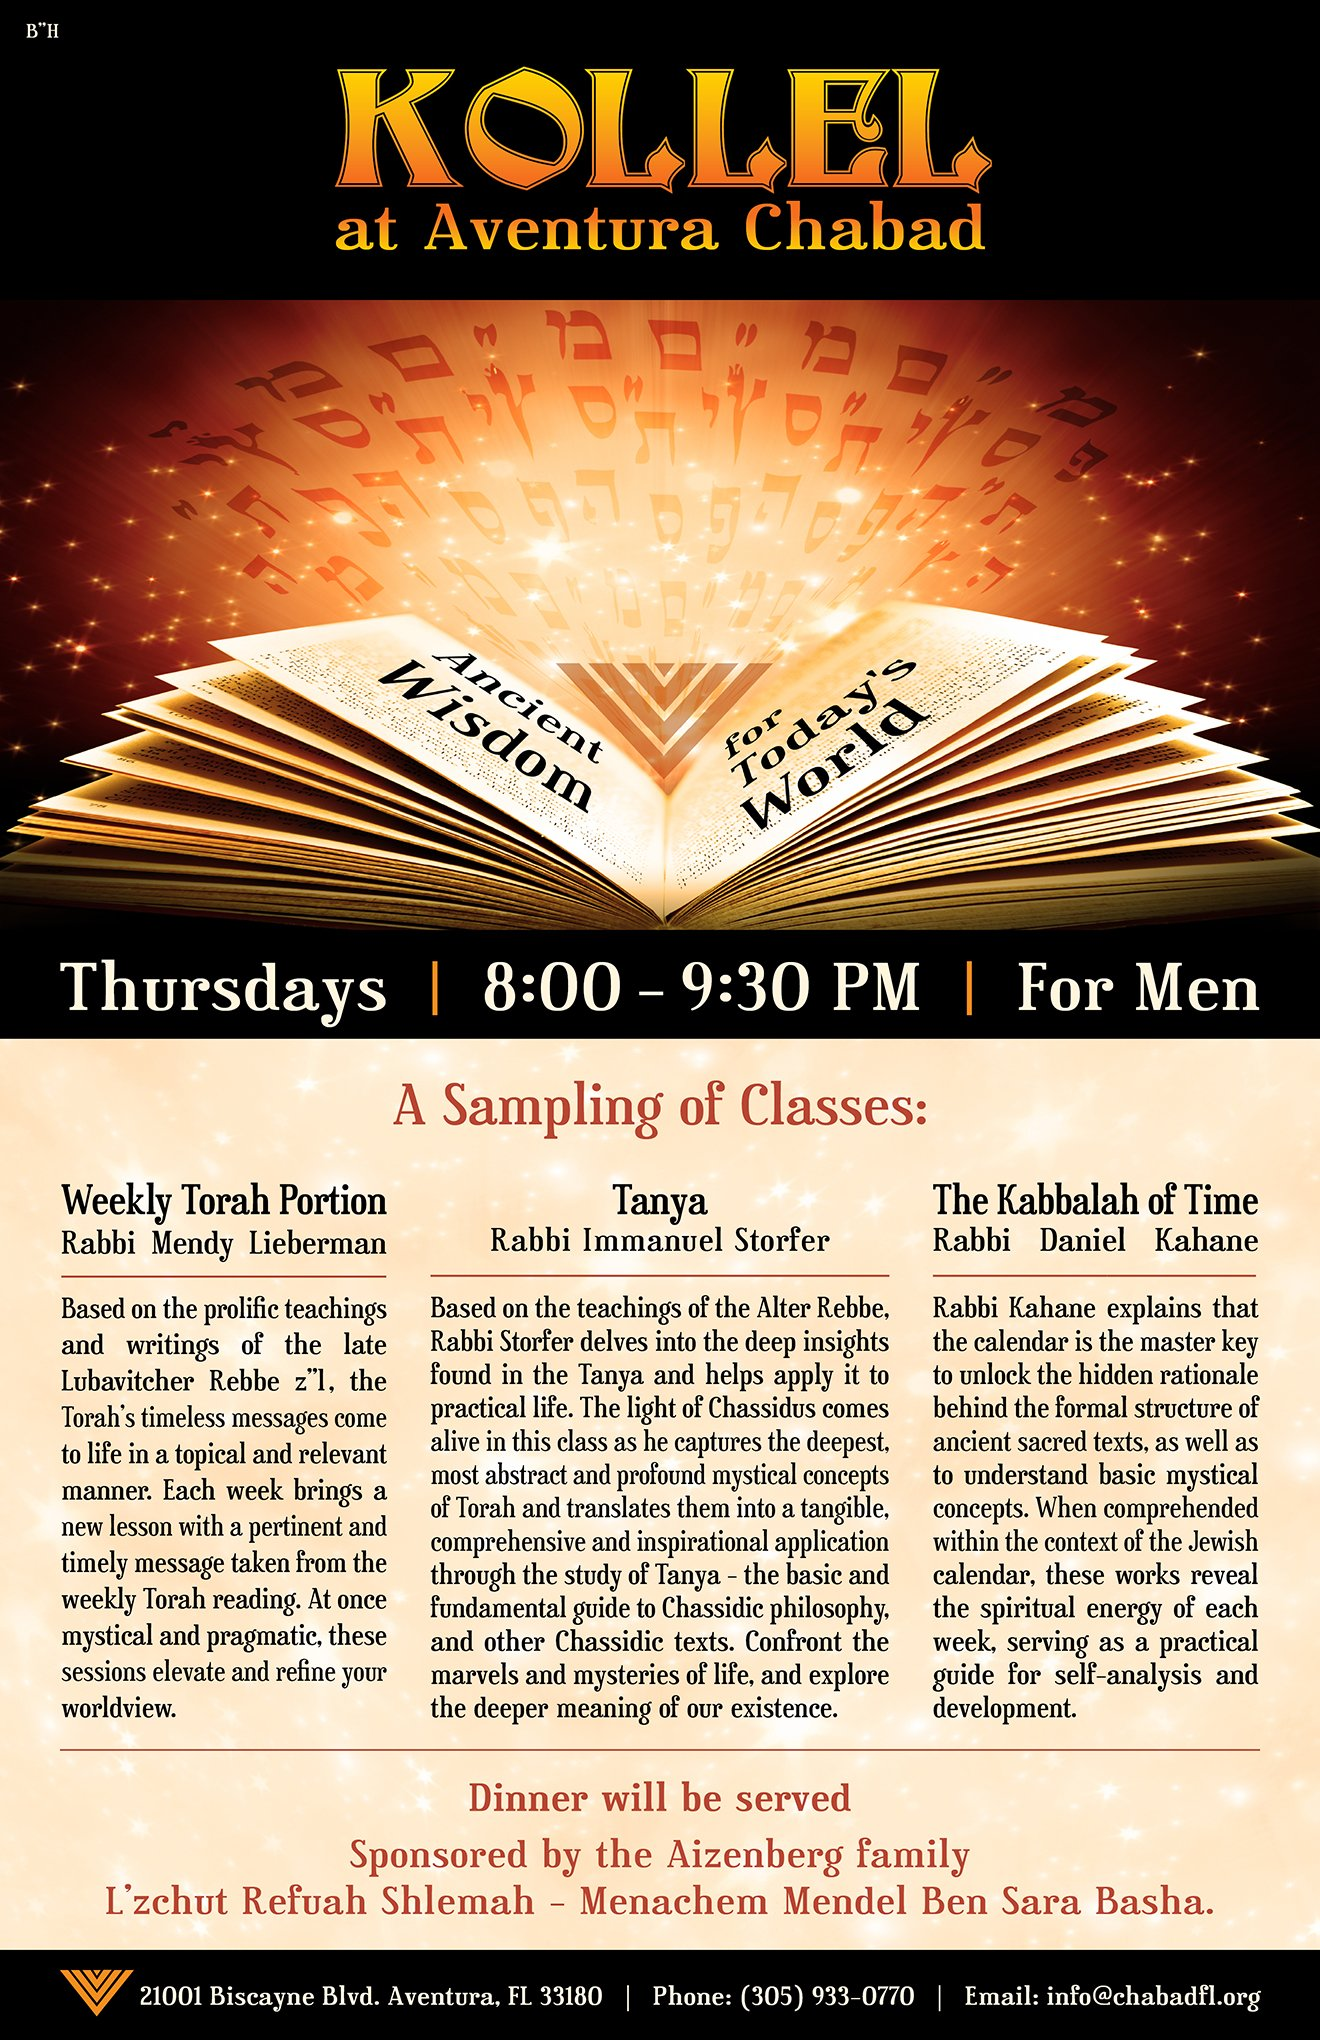 Men Kollel_Flyer.jpg